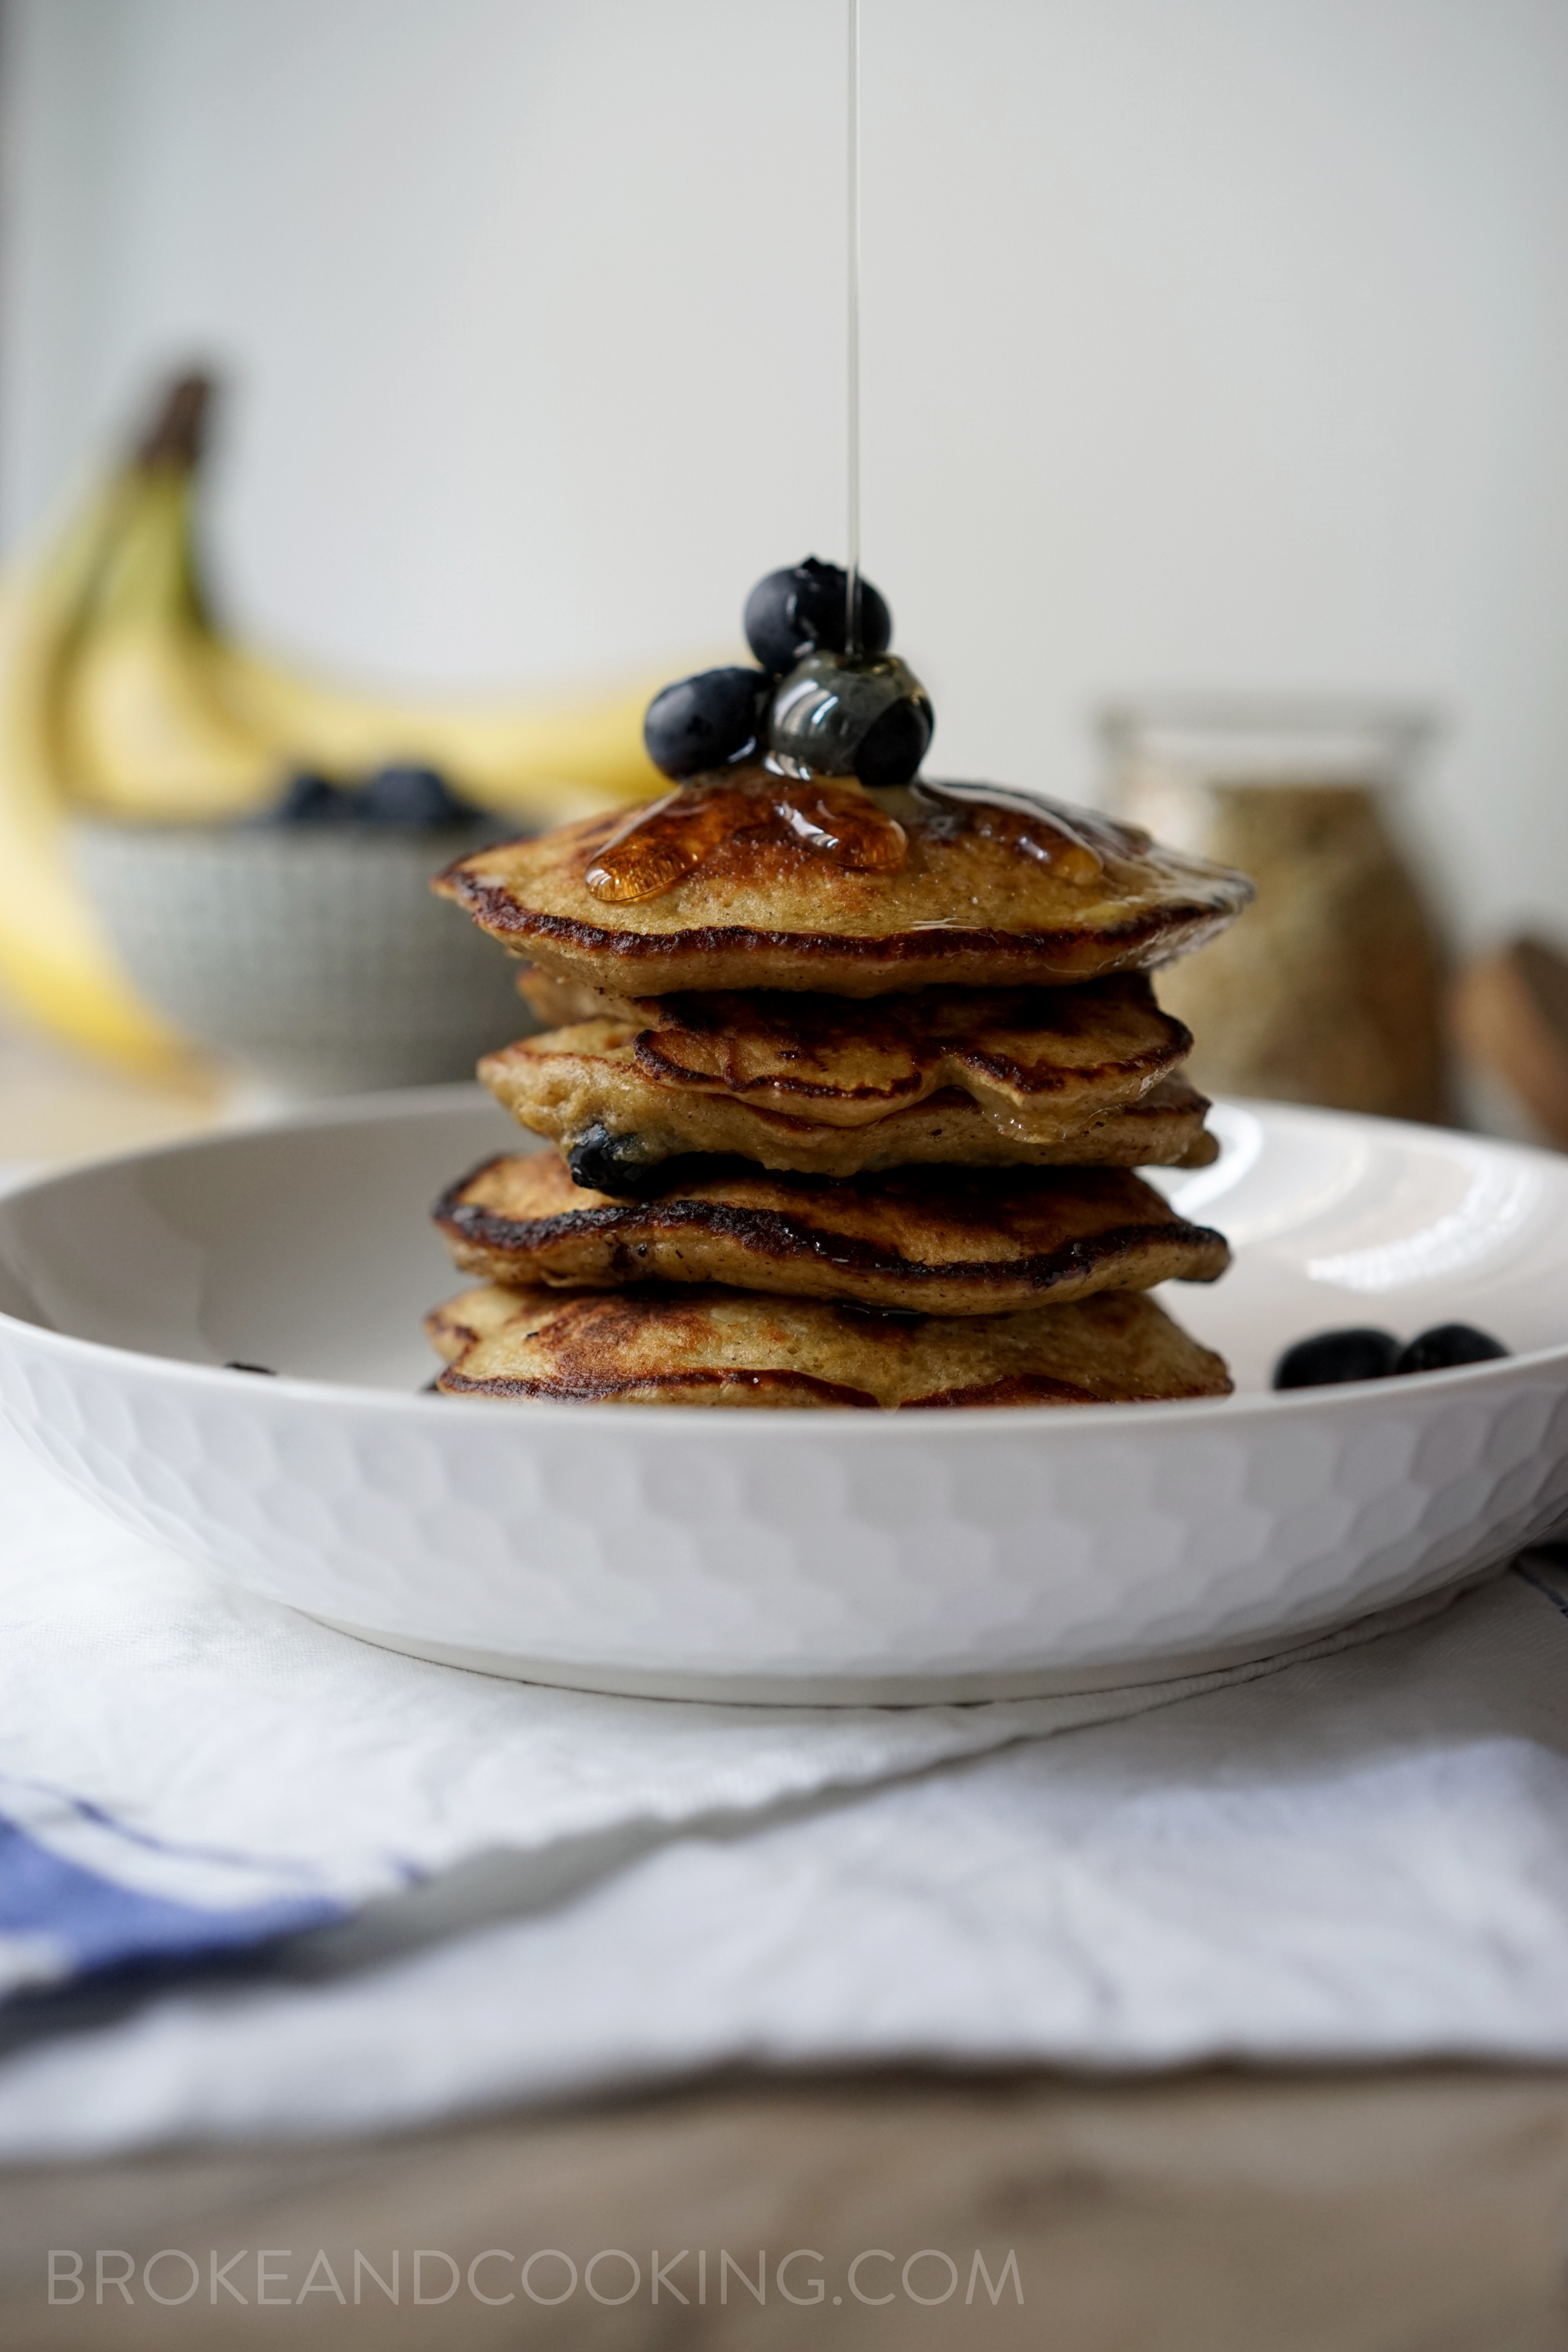 Broke and Cooking Healthy Banana Oat Pancakes 8